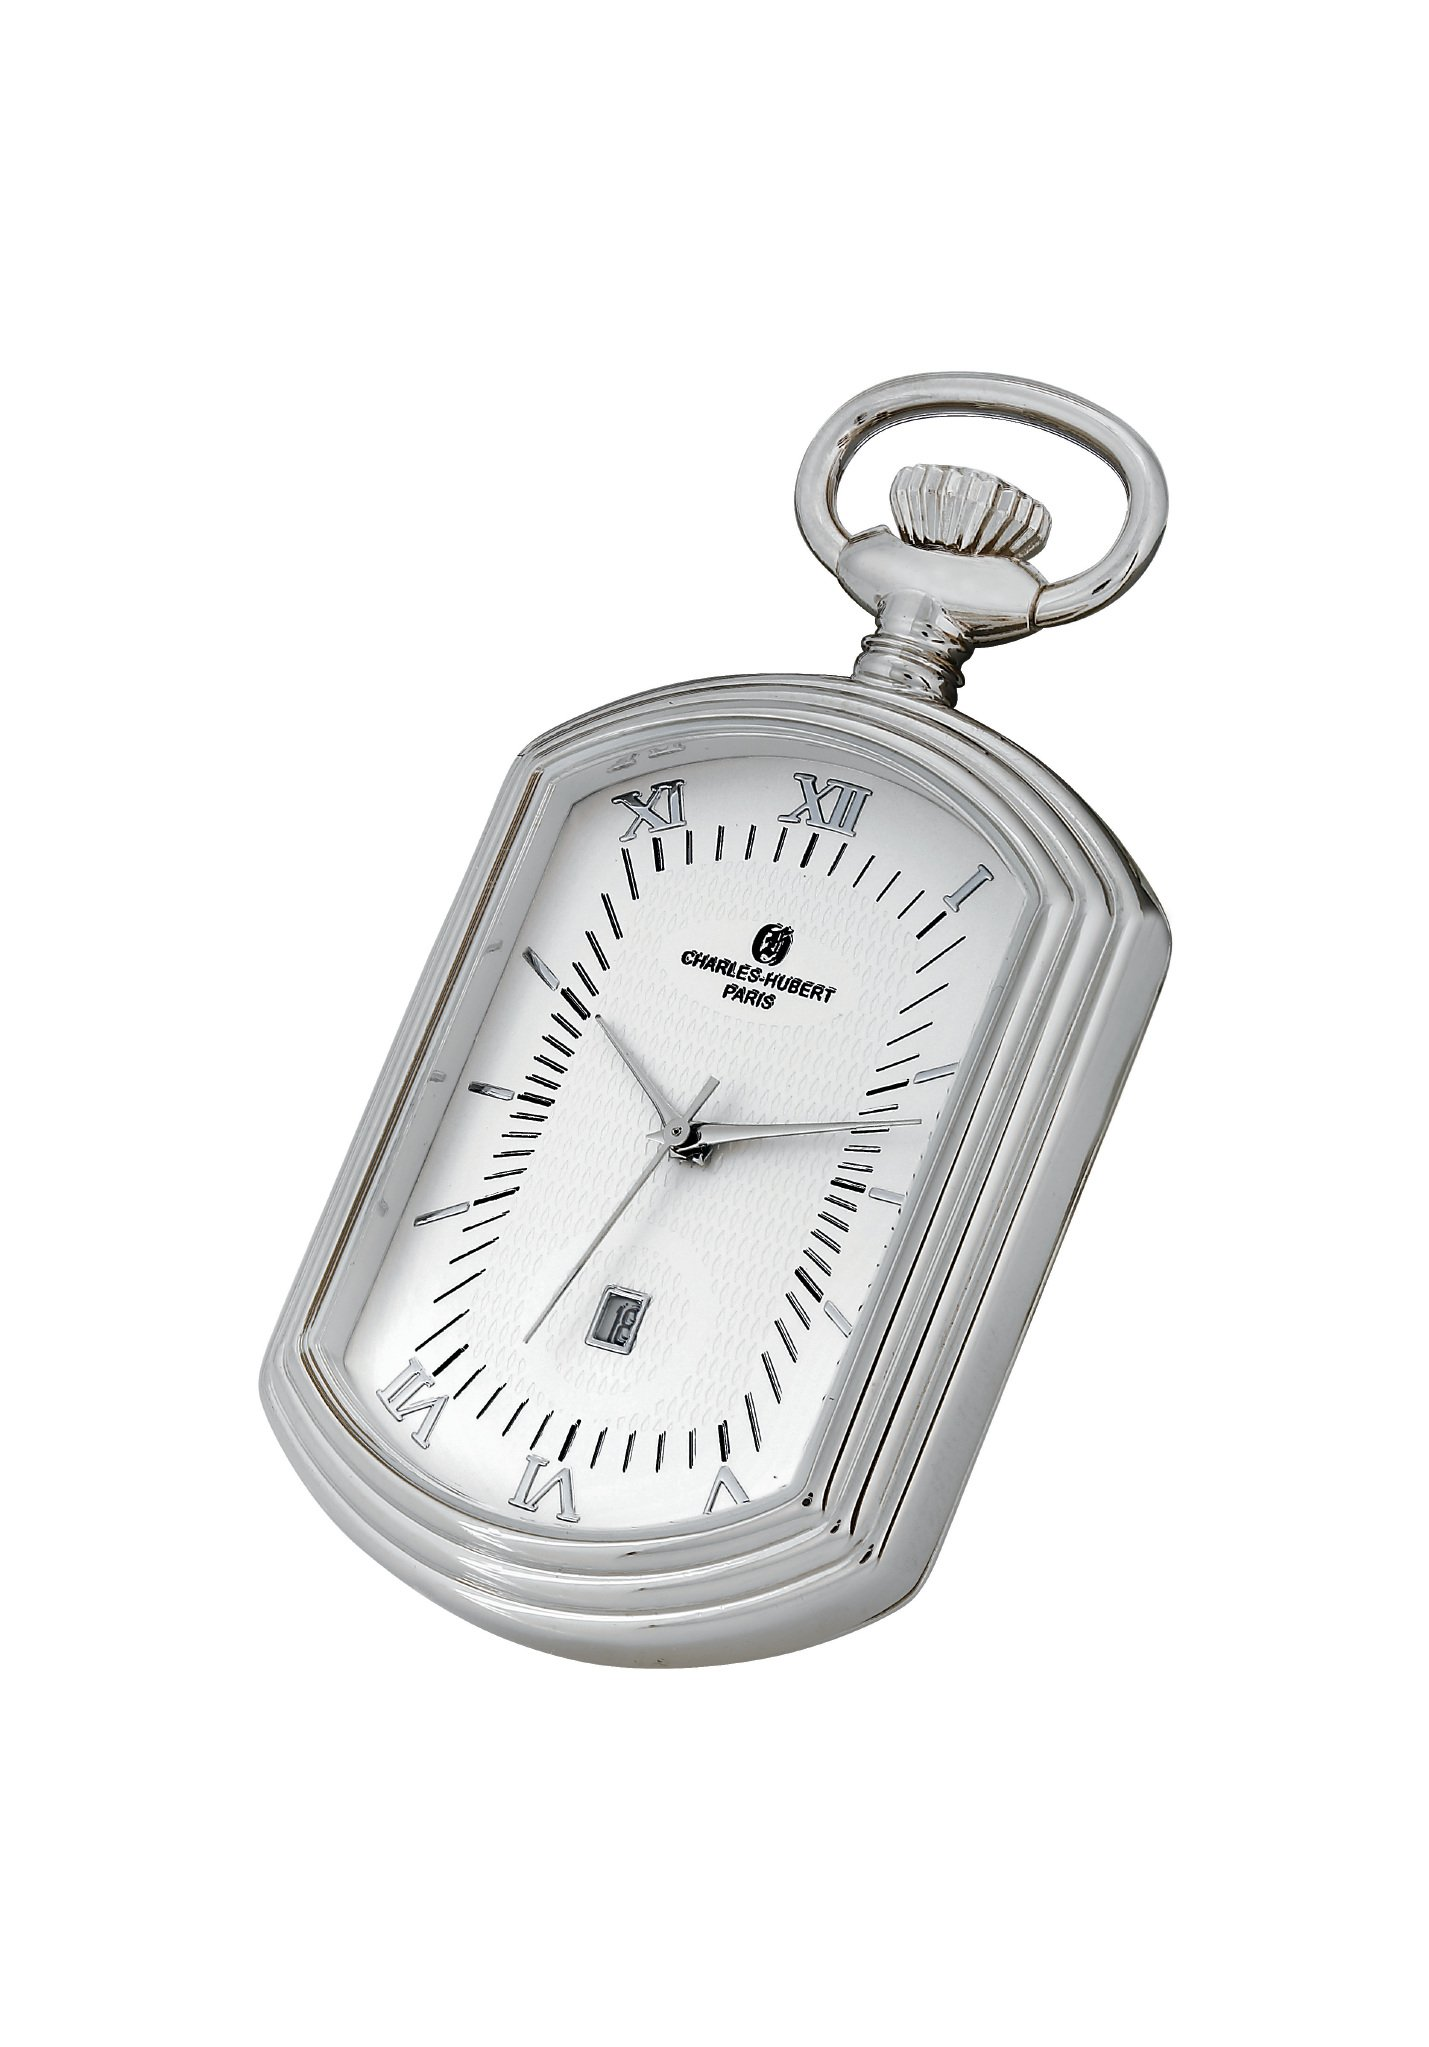 Roy Rose Jewelry Charles Hubert Rectangle Shape Pocket Watch Classic Collection Quartz Movement with Chain